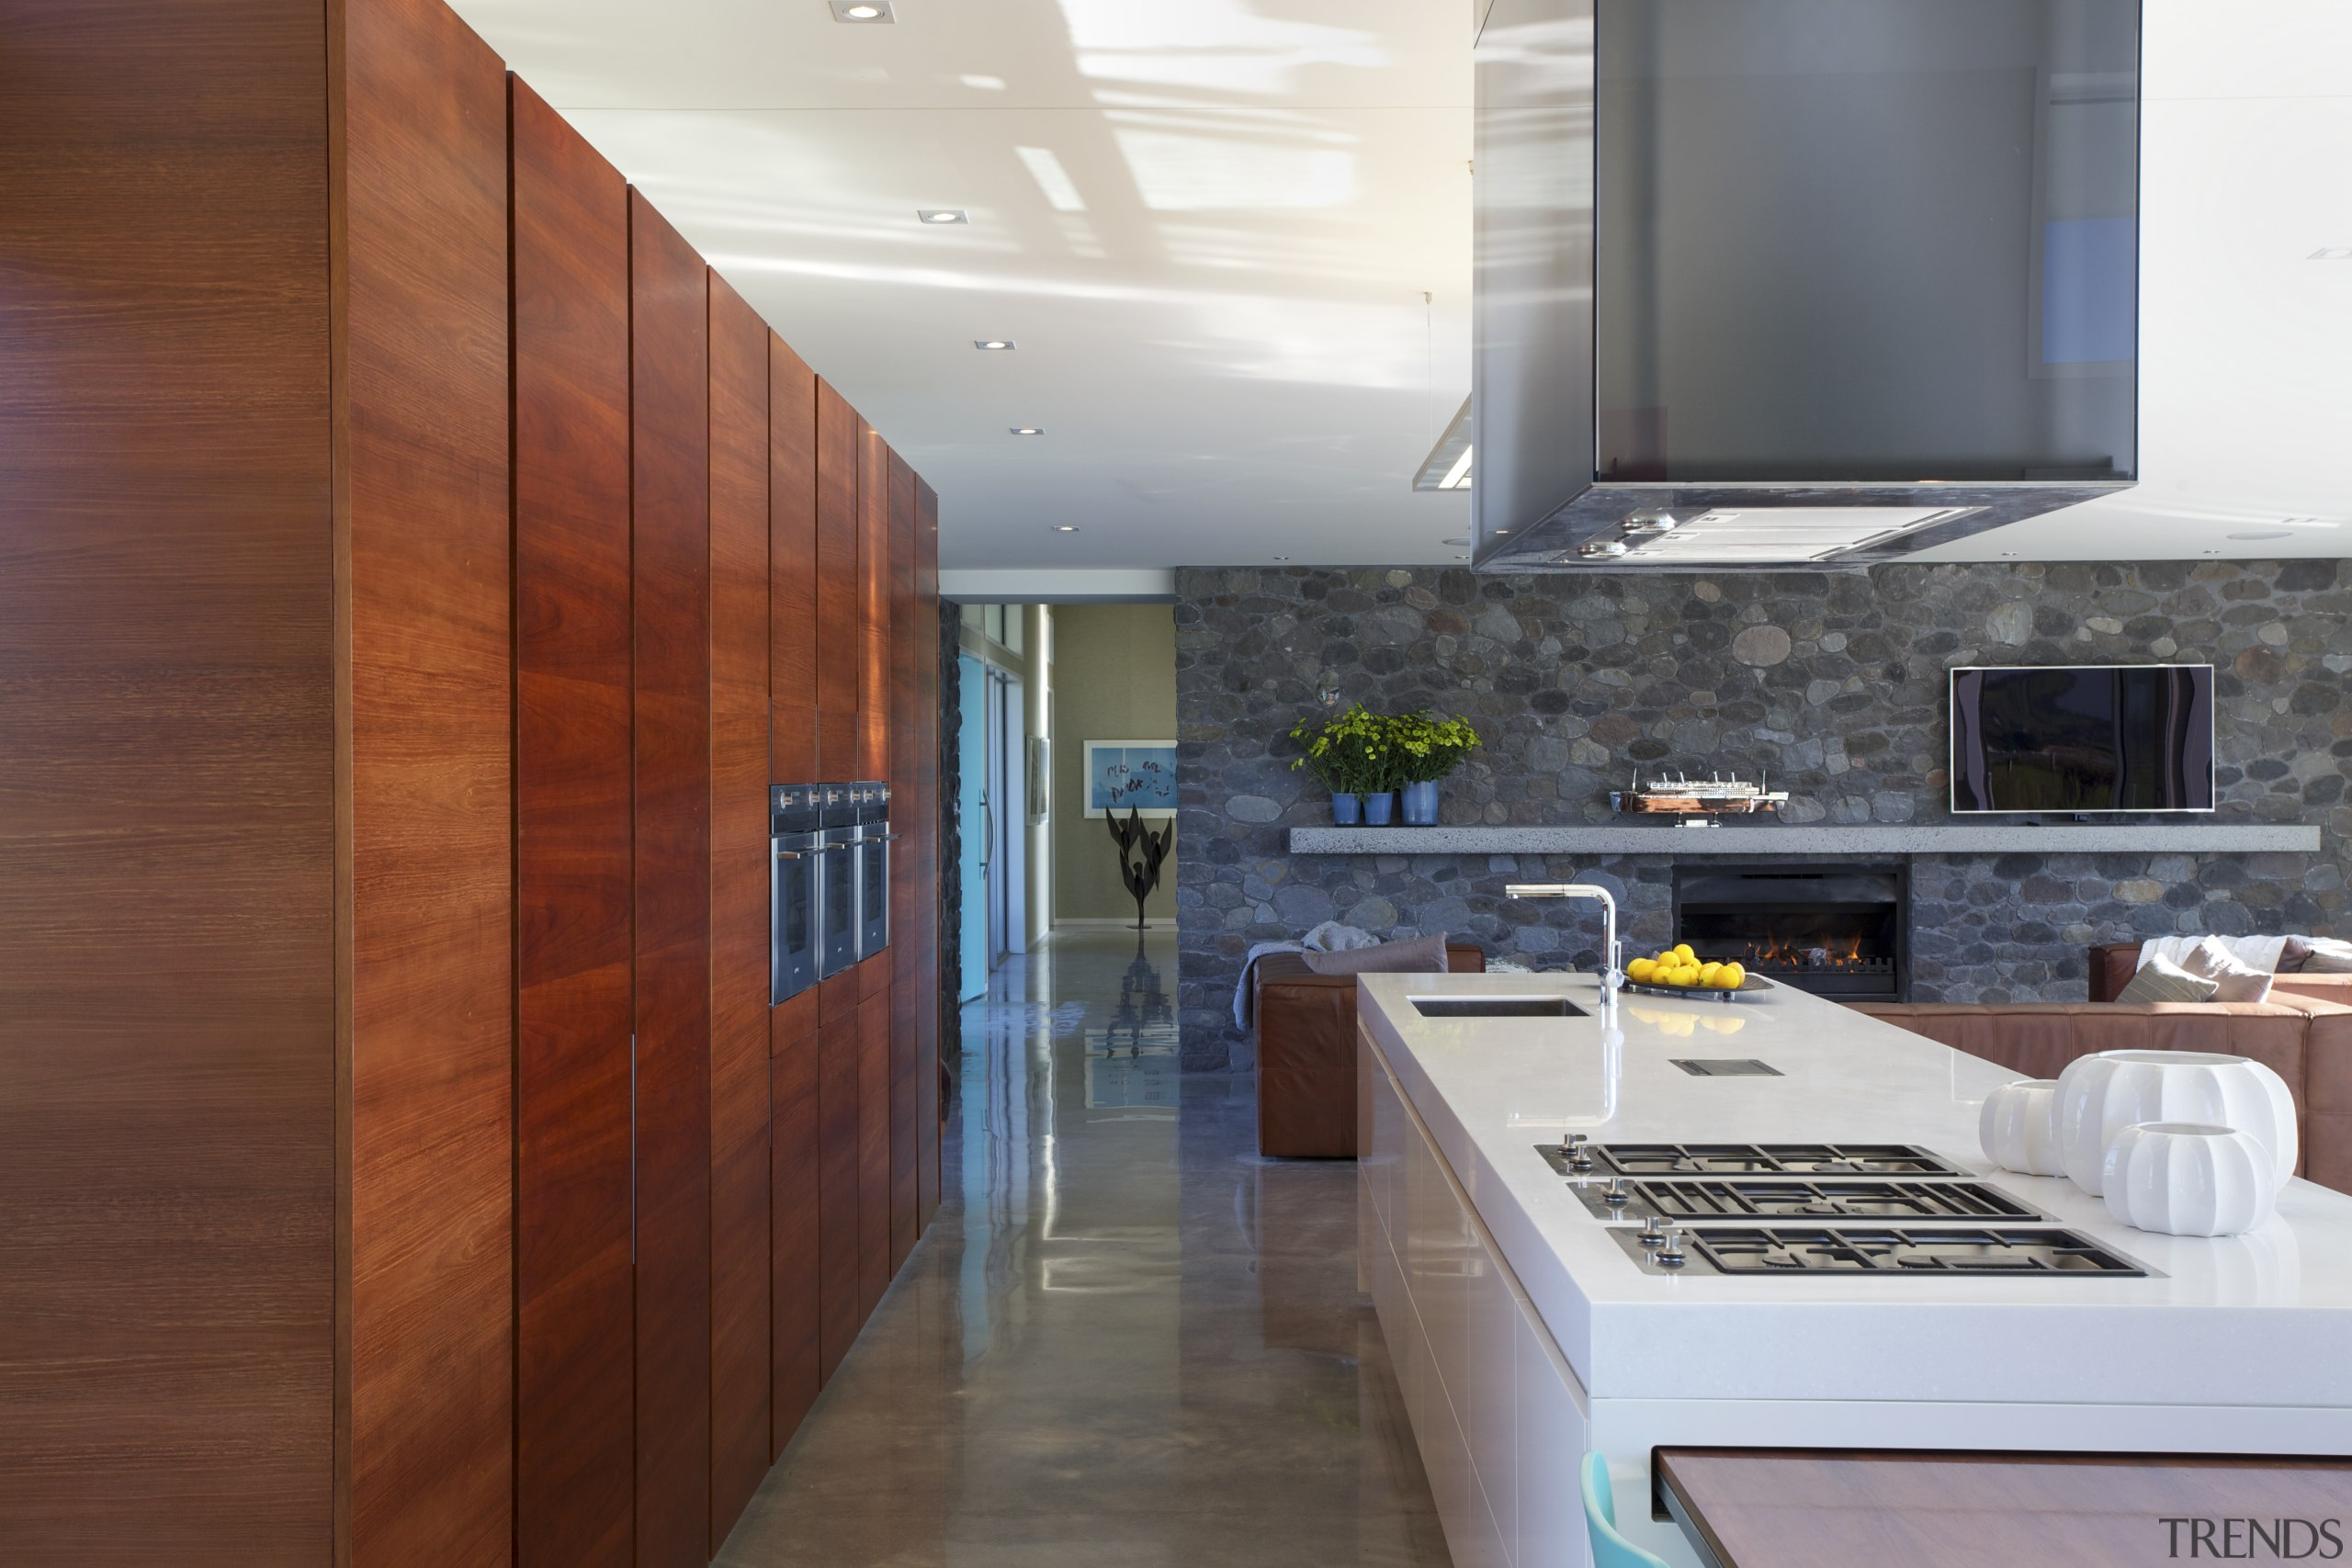 ​​​​​​​Australian blackwood cabinets feature in this kitchen in architecture, building, cabinetry, ceiling, countertop, floor, flooring, furniture, hardwood, home, house, interior design, kitchen, loft, plywood, property, real estate, room, tile, wood flooring, gray, brown